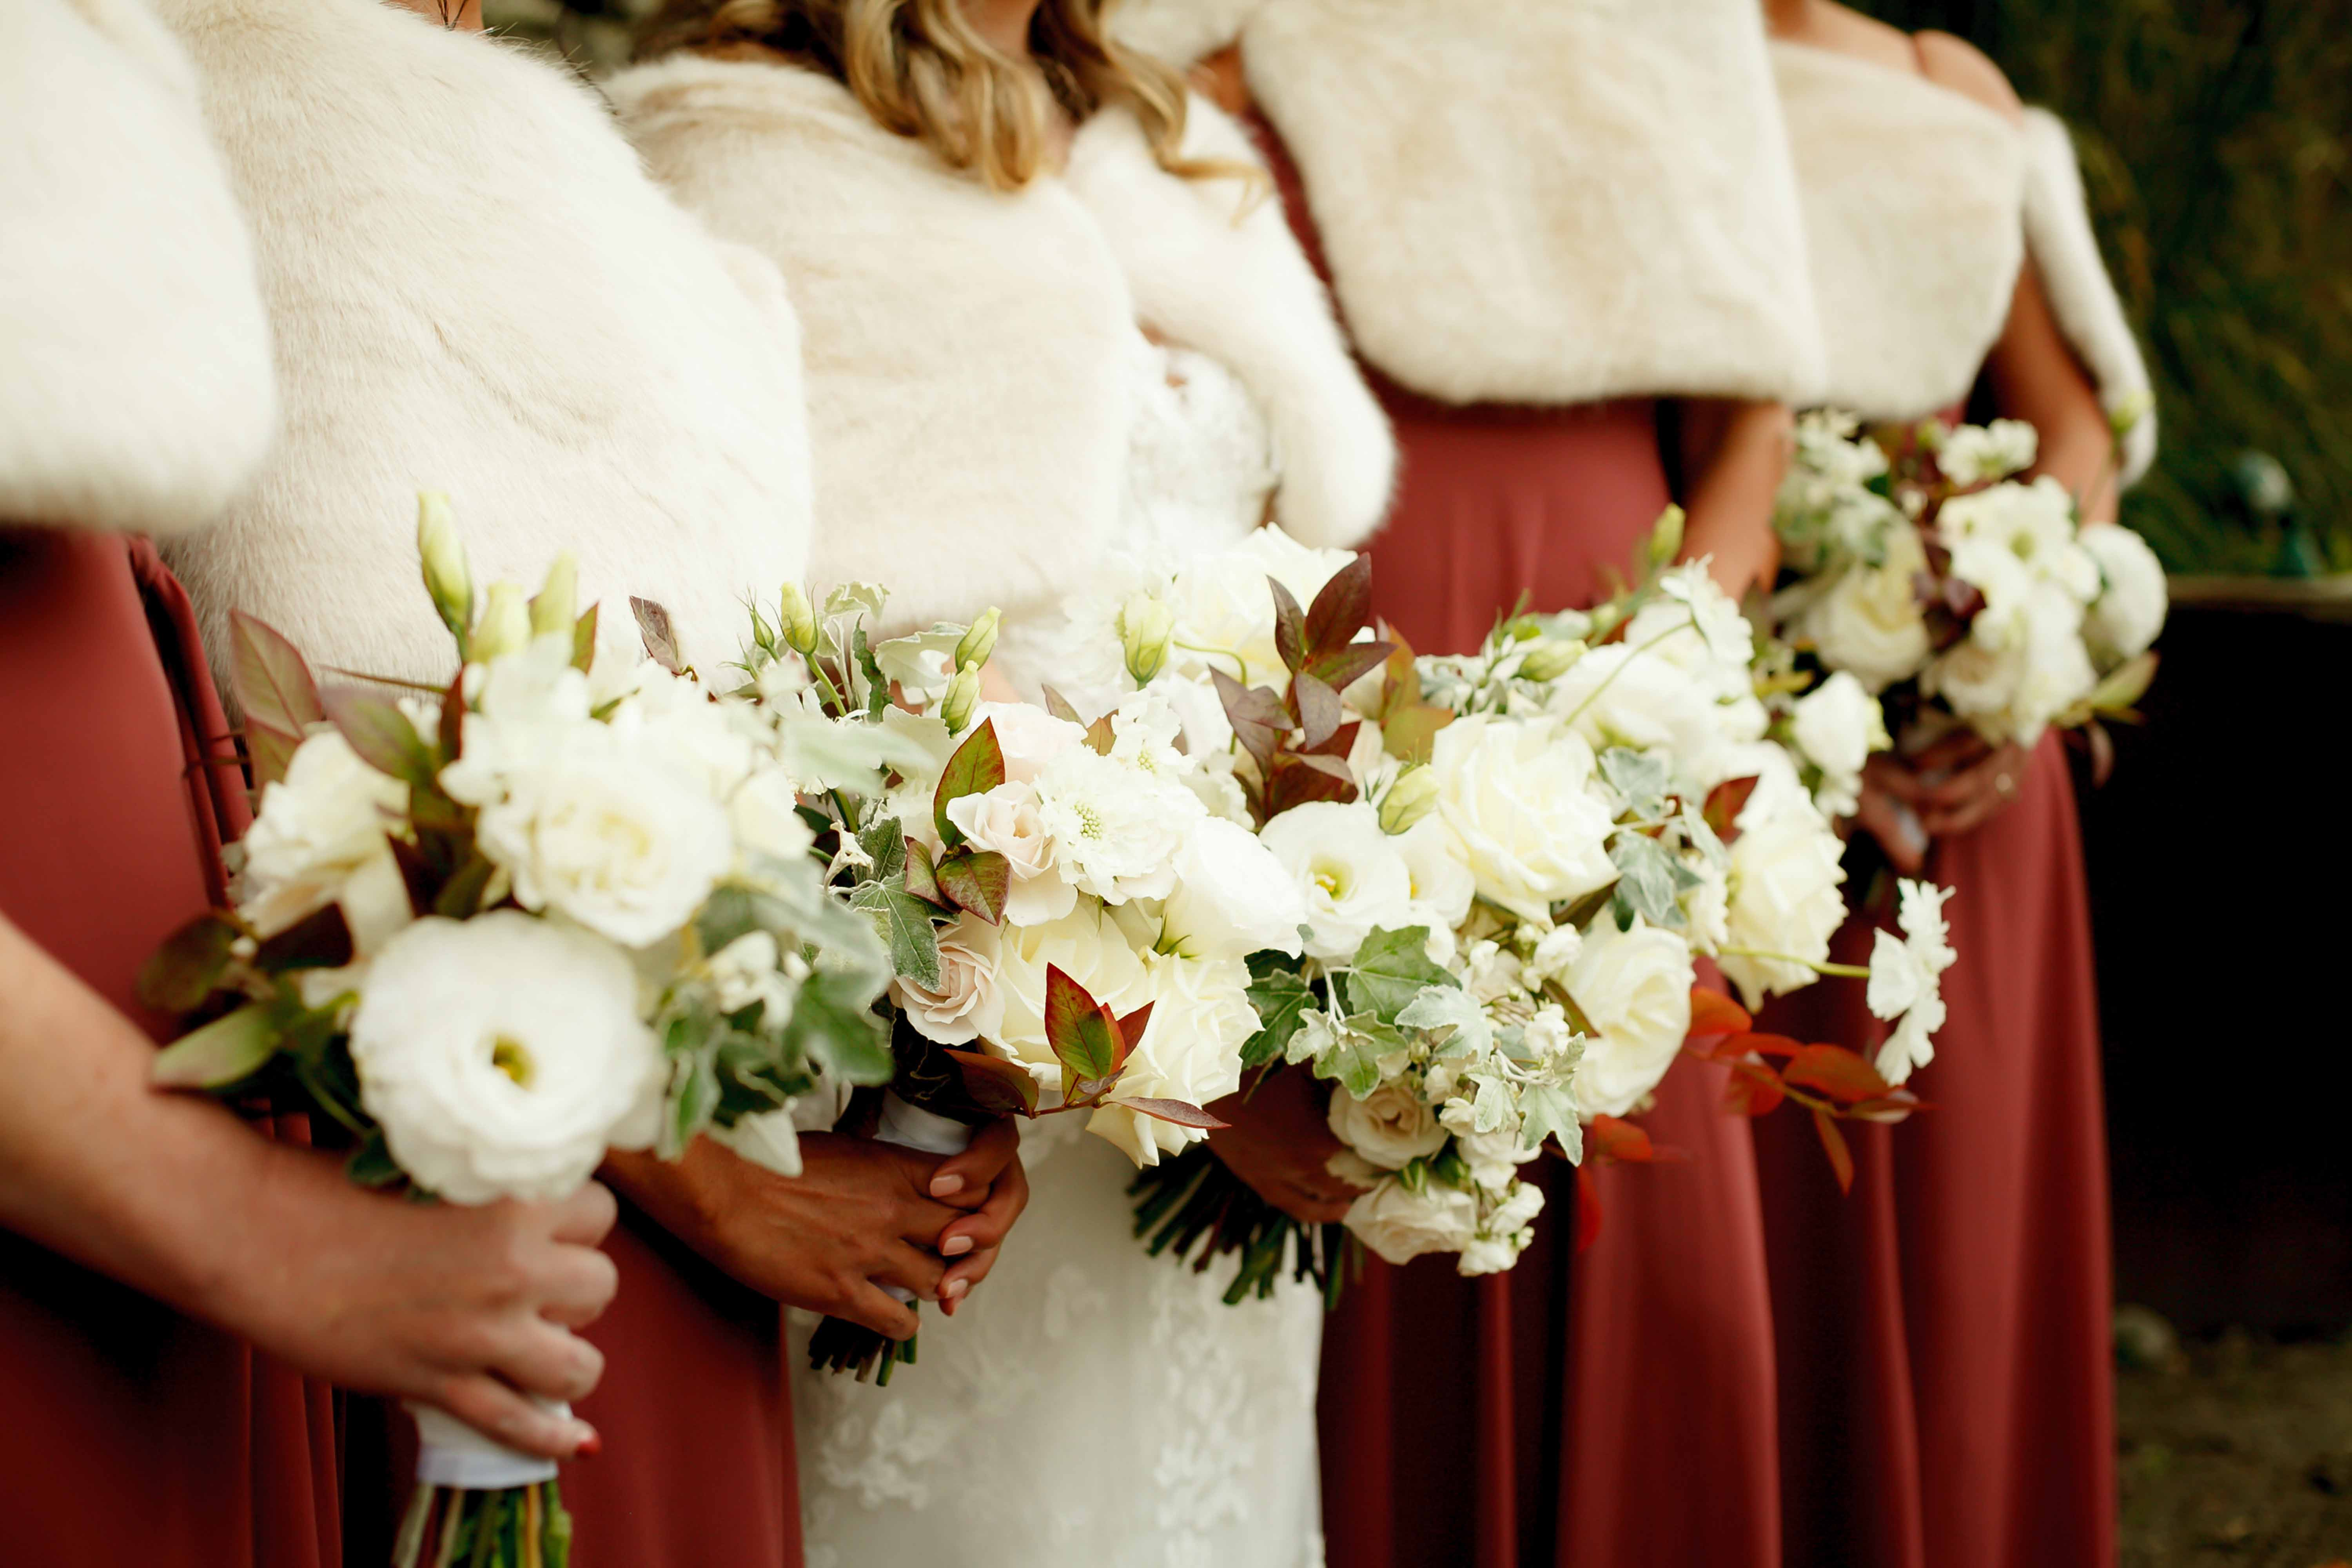 Bride's maids wedding bouquets in fall textures